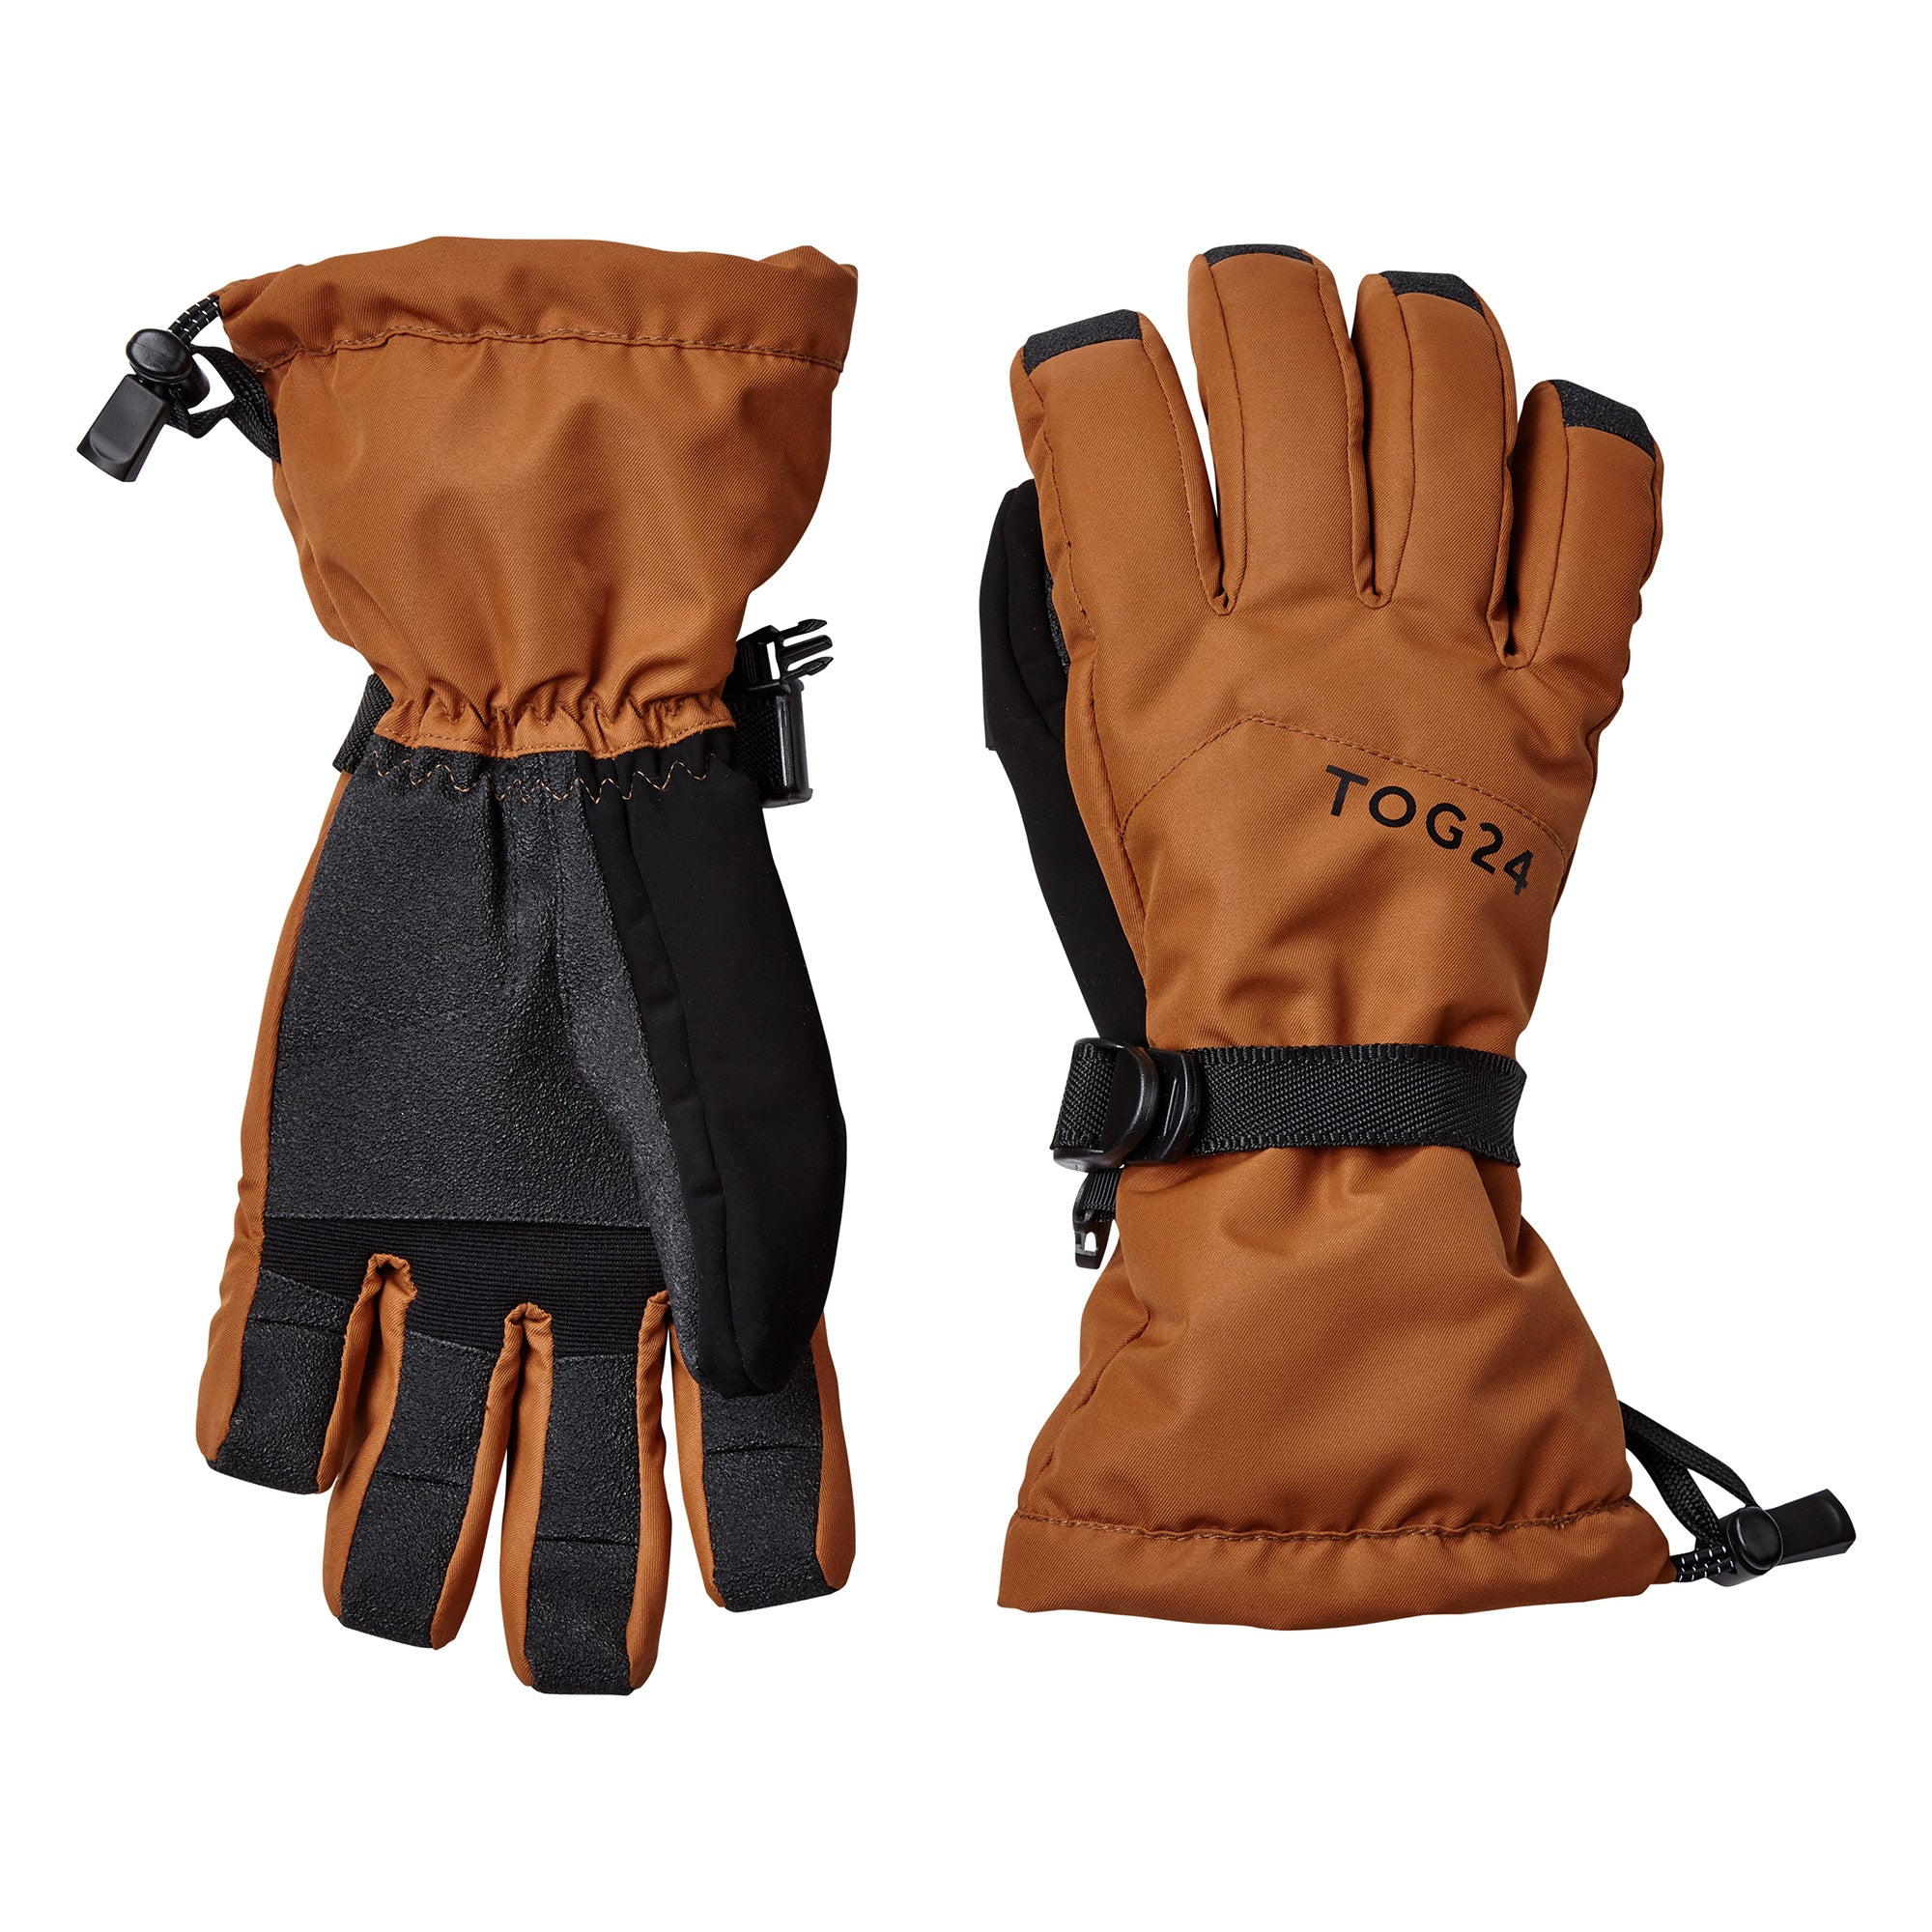 Lockton Waterproof Ski Gloves - Amber